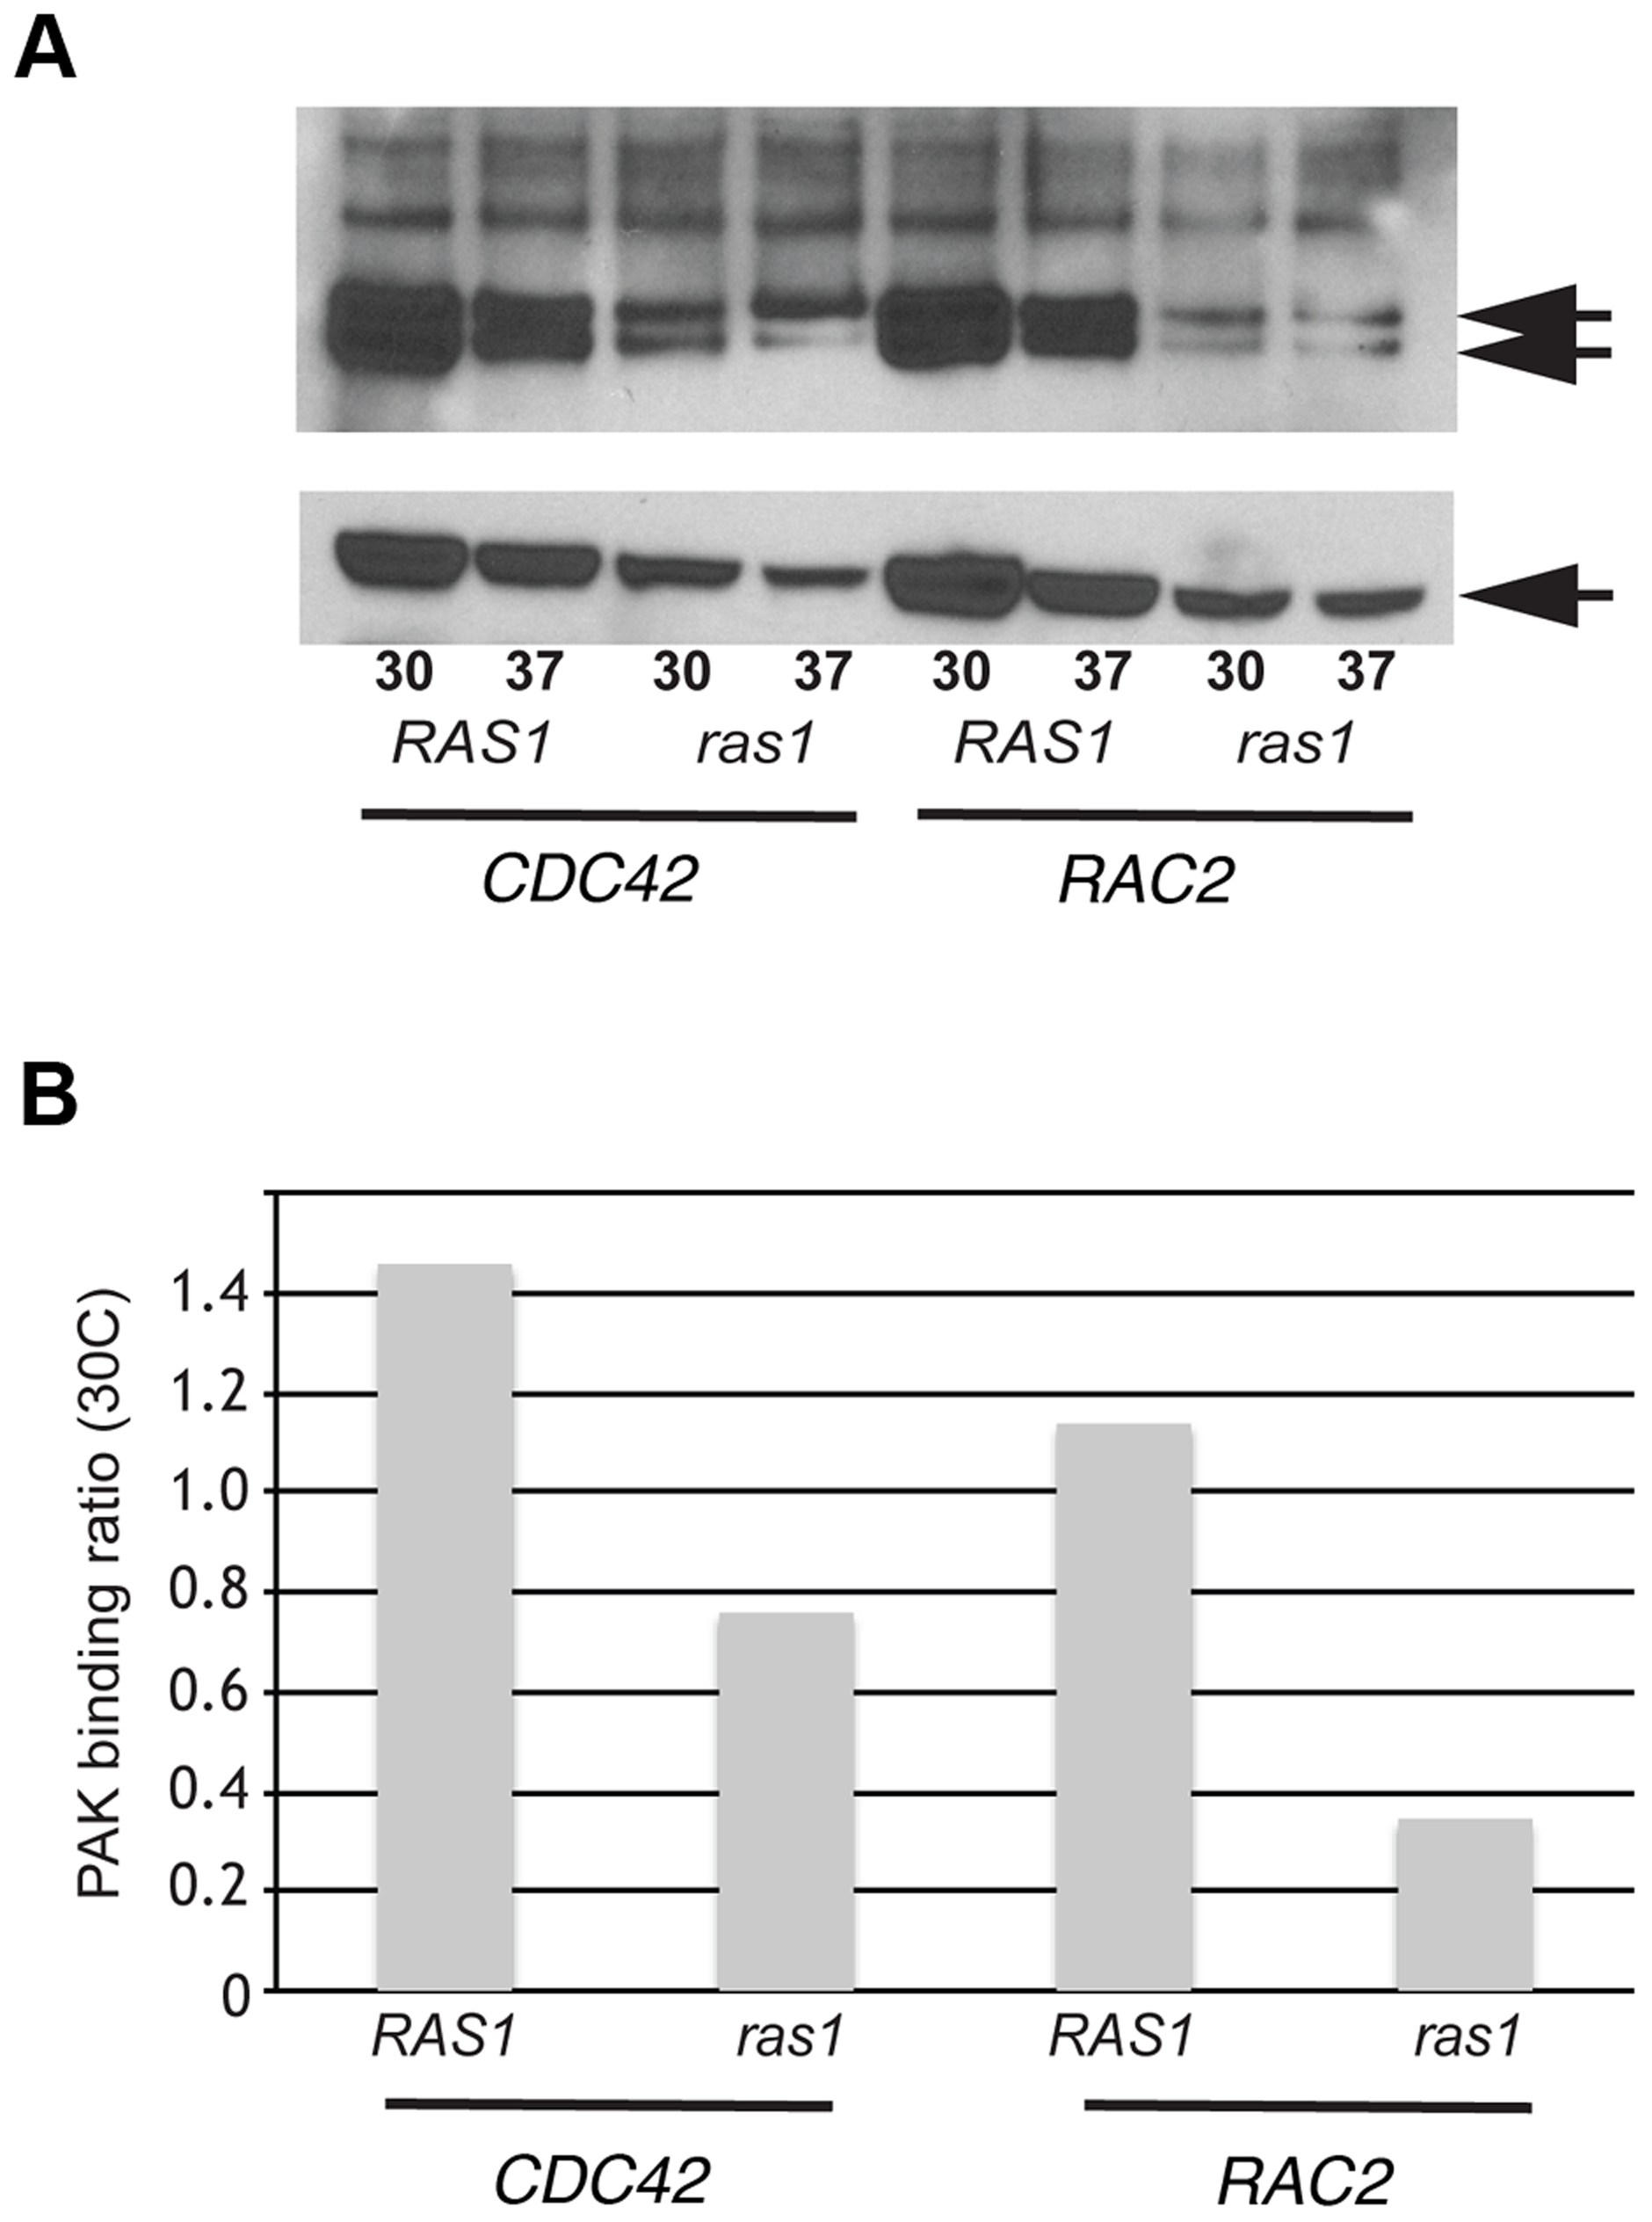 Ras1 is required for Cdc42/Rac-mediated PAK activation.